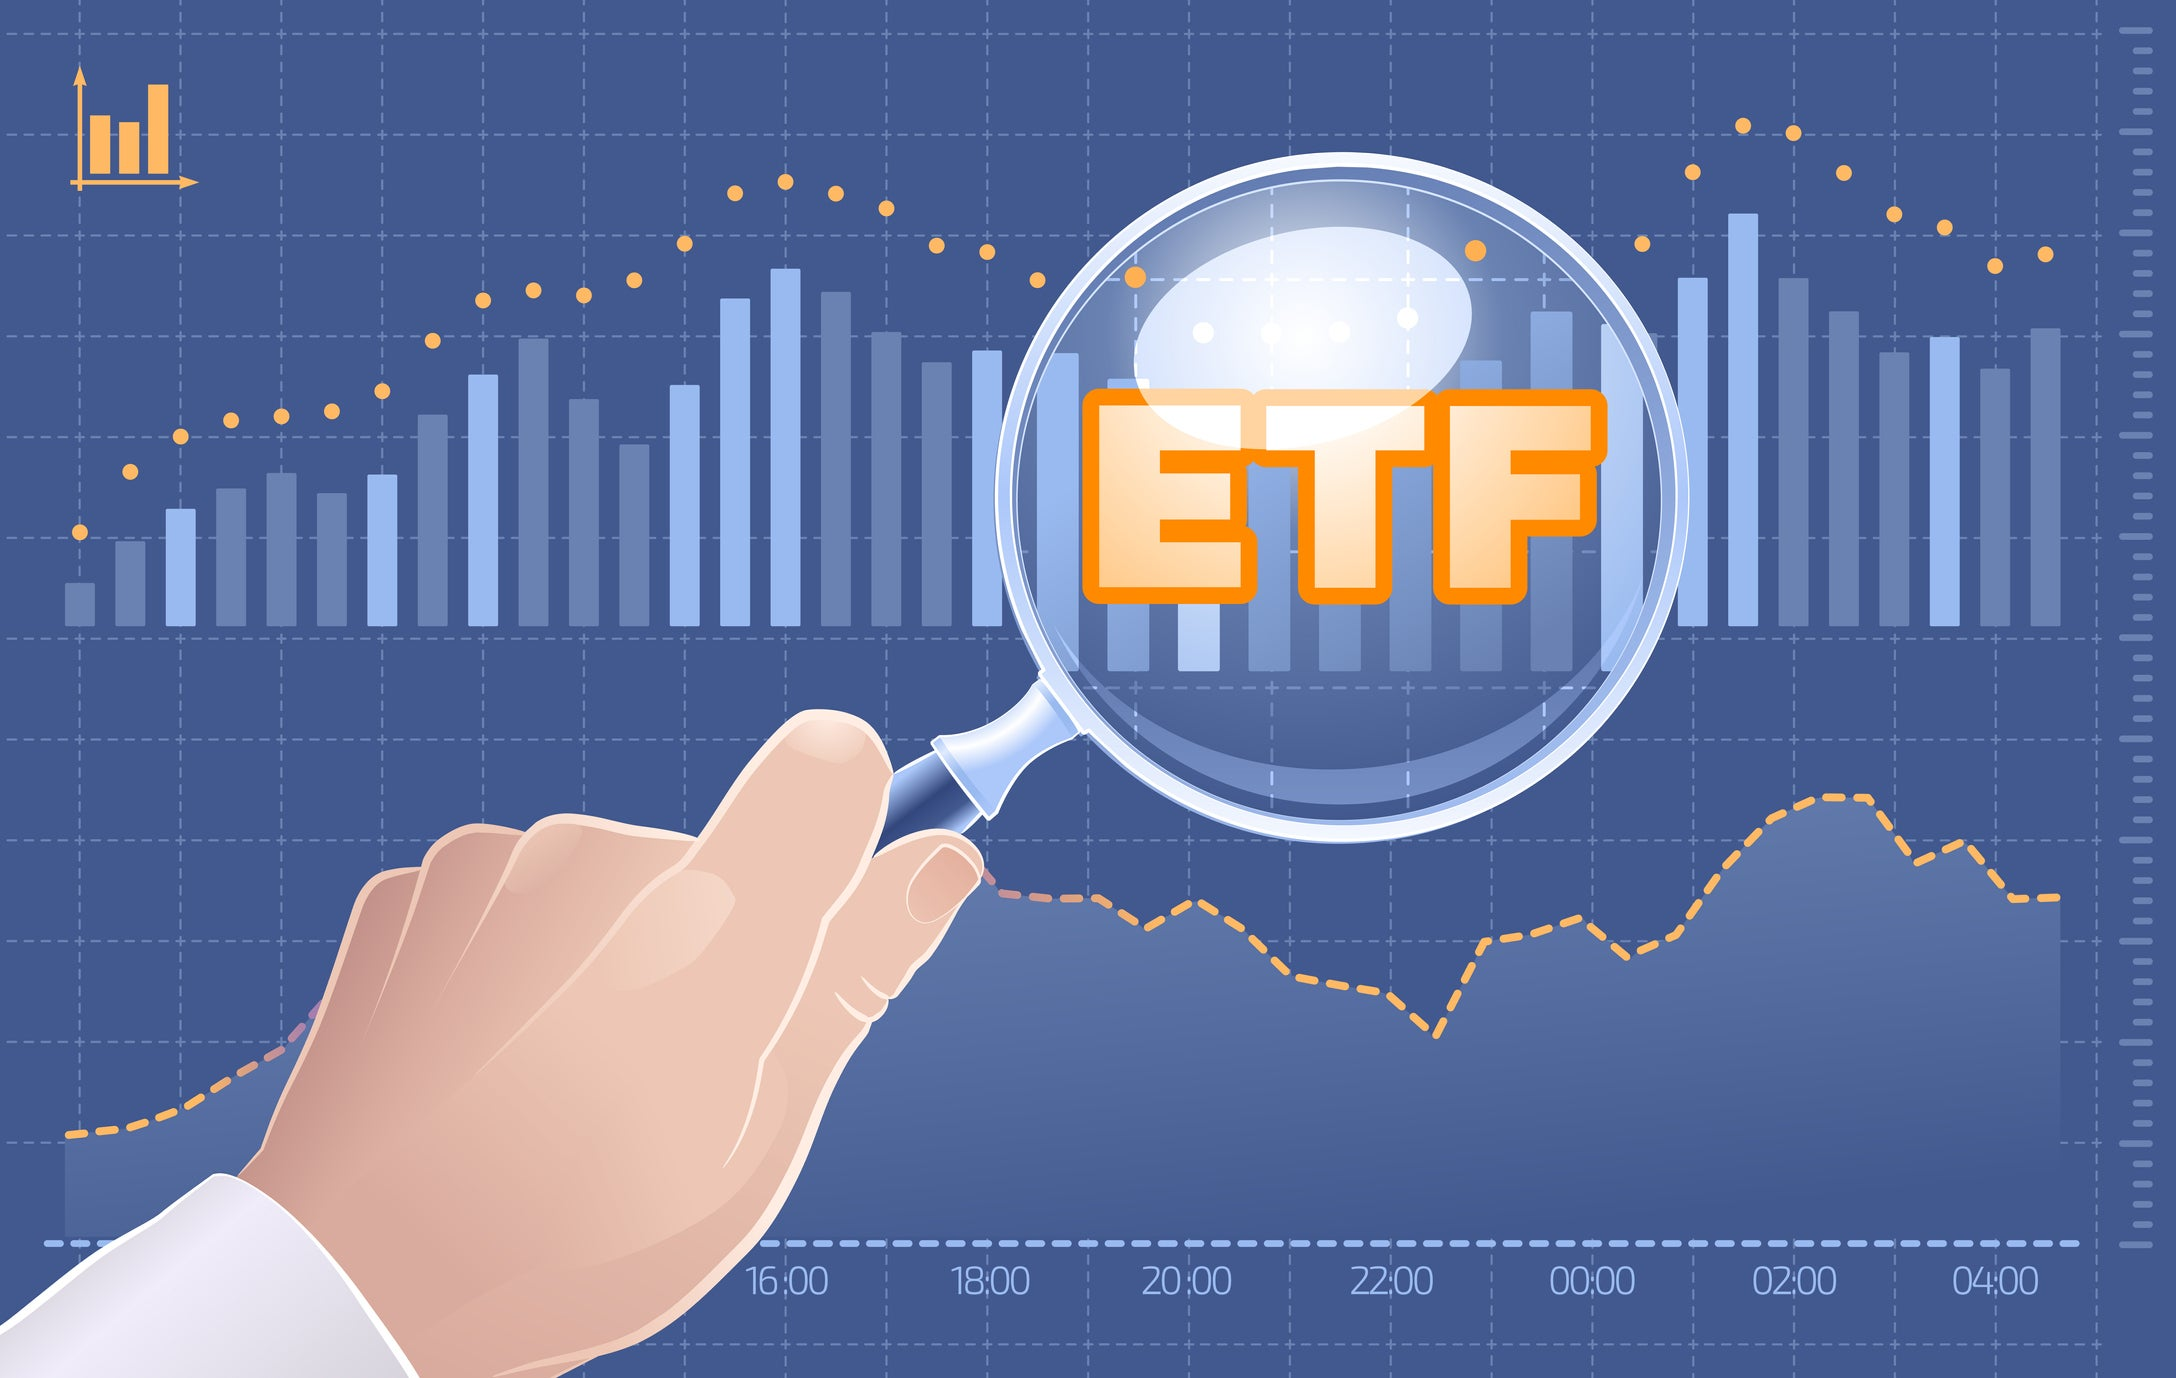 3 ETFs That Could Help You Send Your Kids to College